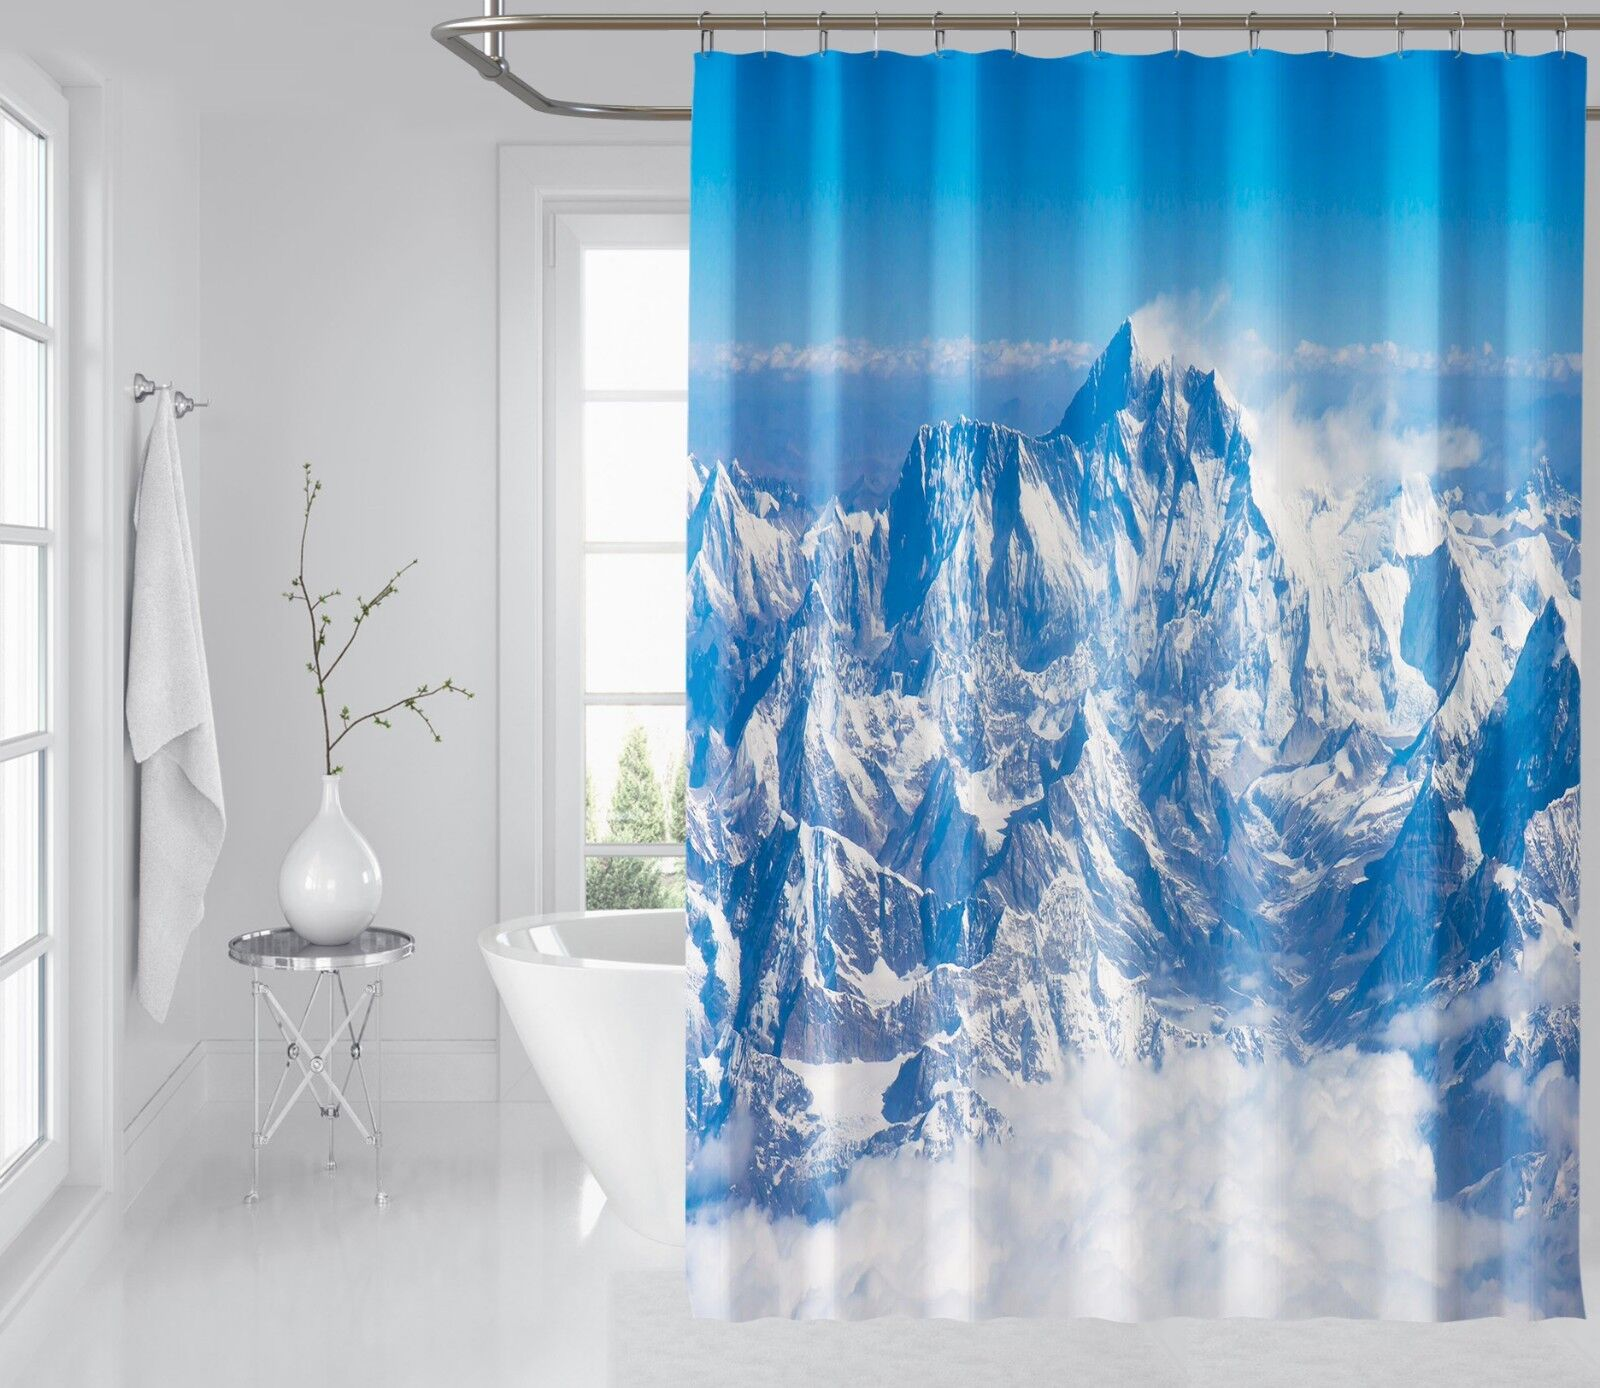 3D Weiss Mountain 45 Shower Curtain Waterproof Fiber Bathroom Windows Toilet 815d89